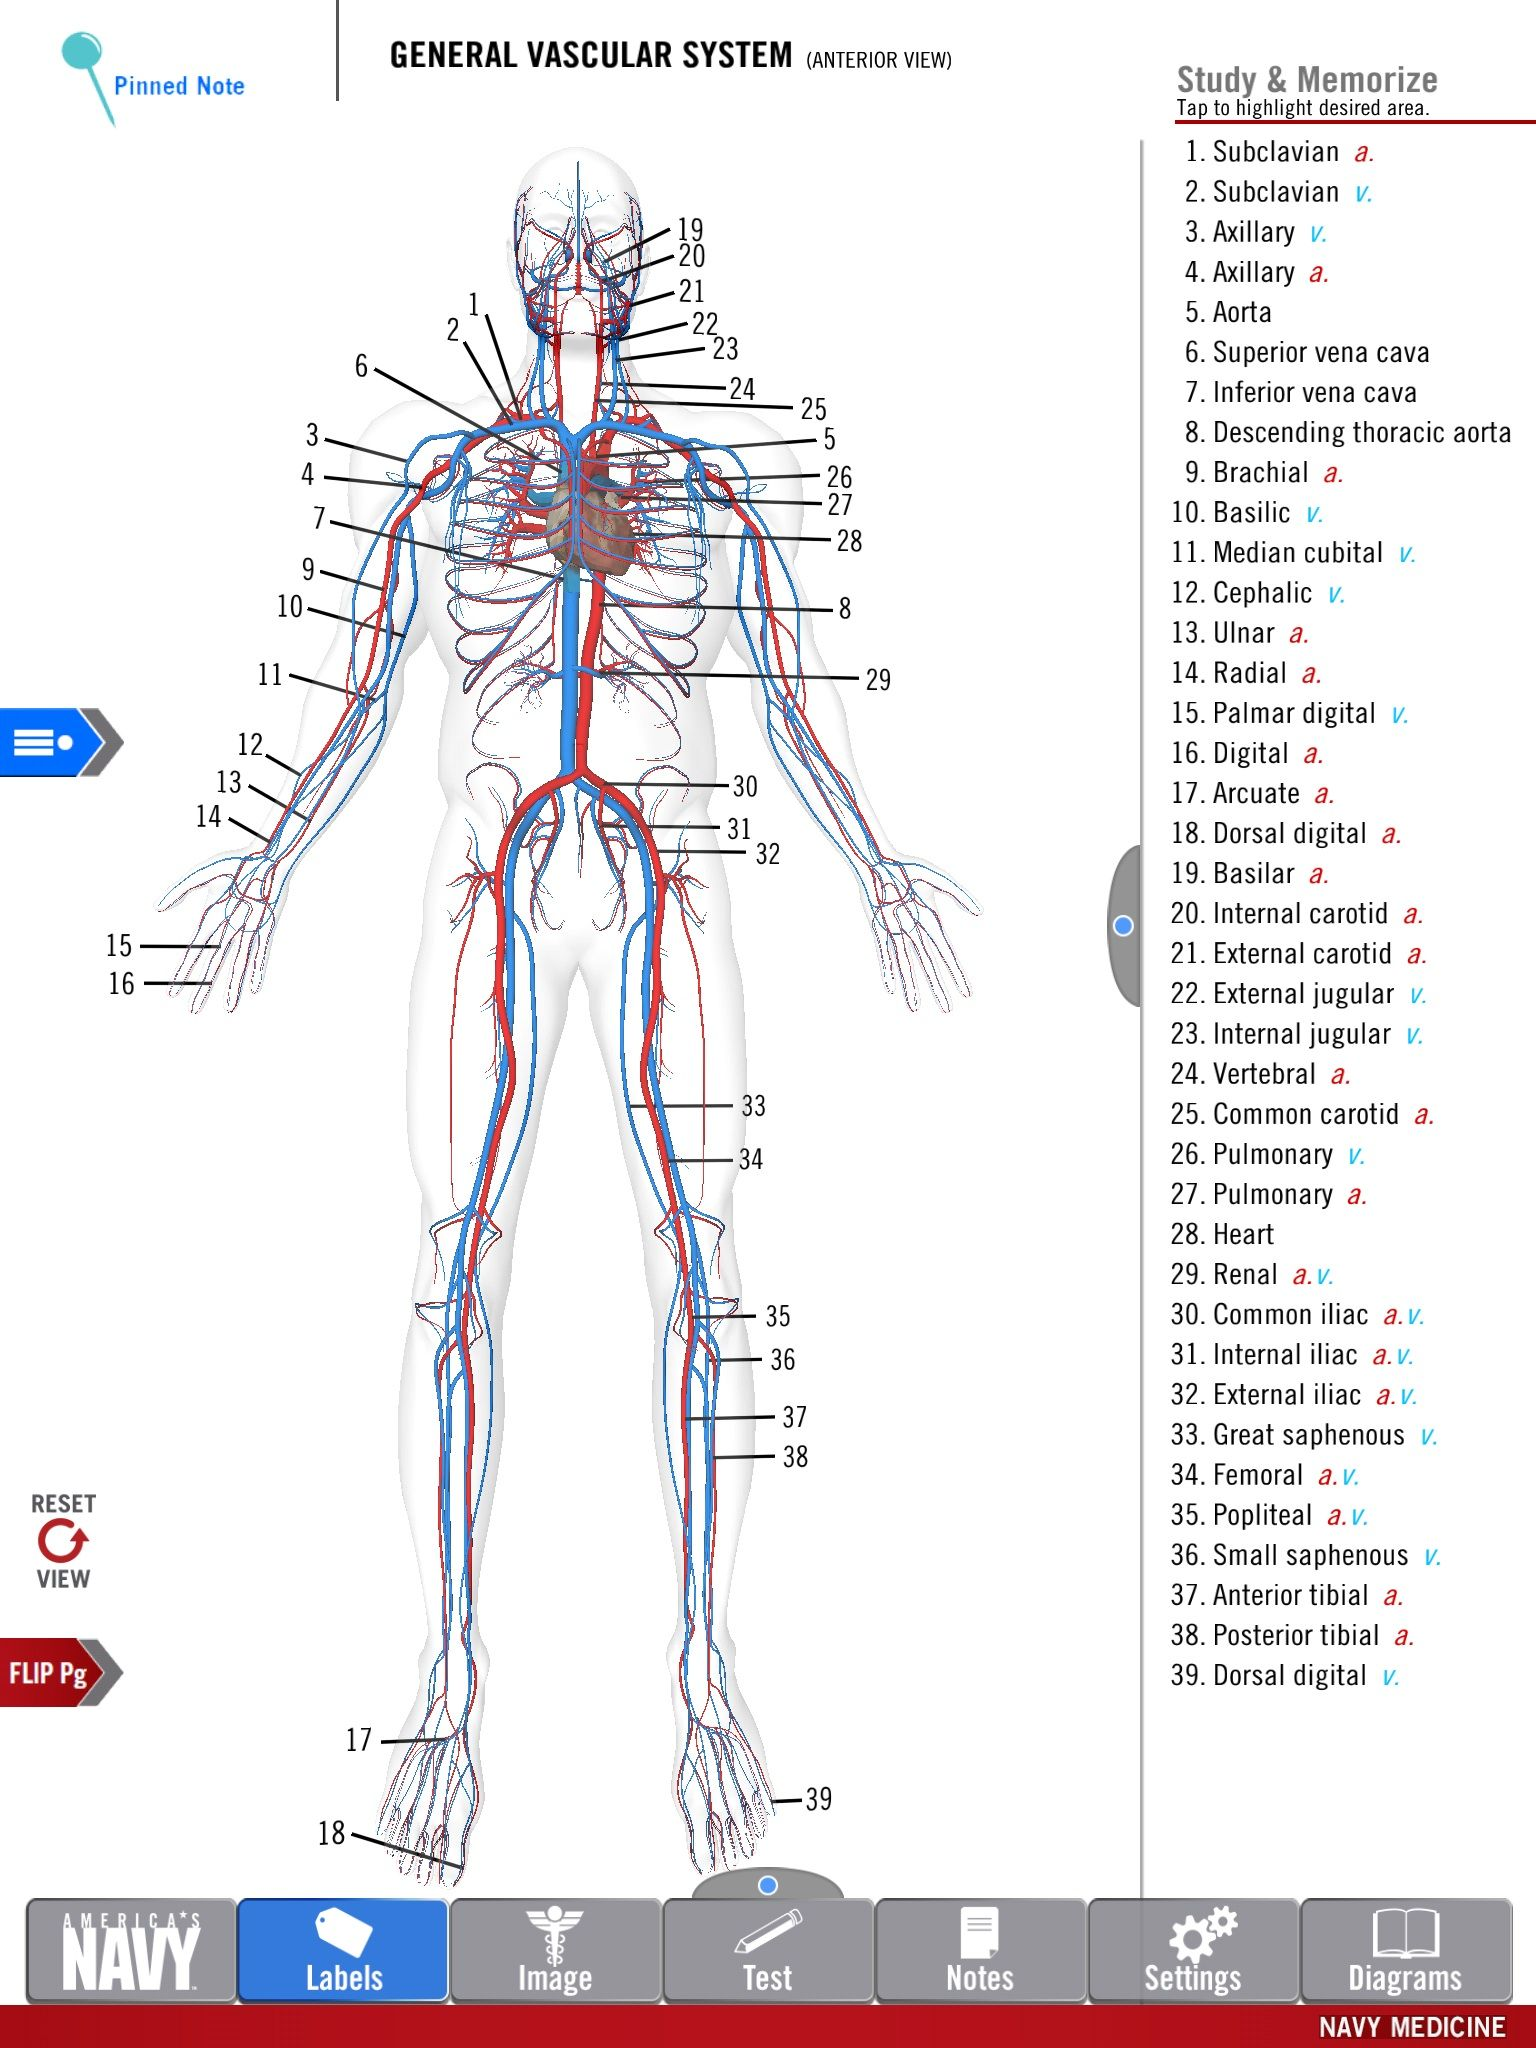 hight resolution of diagram of the general vascular system from the free anatomy study guide app by america s navy includes high res 3 d diagrams